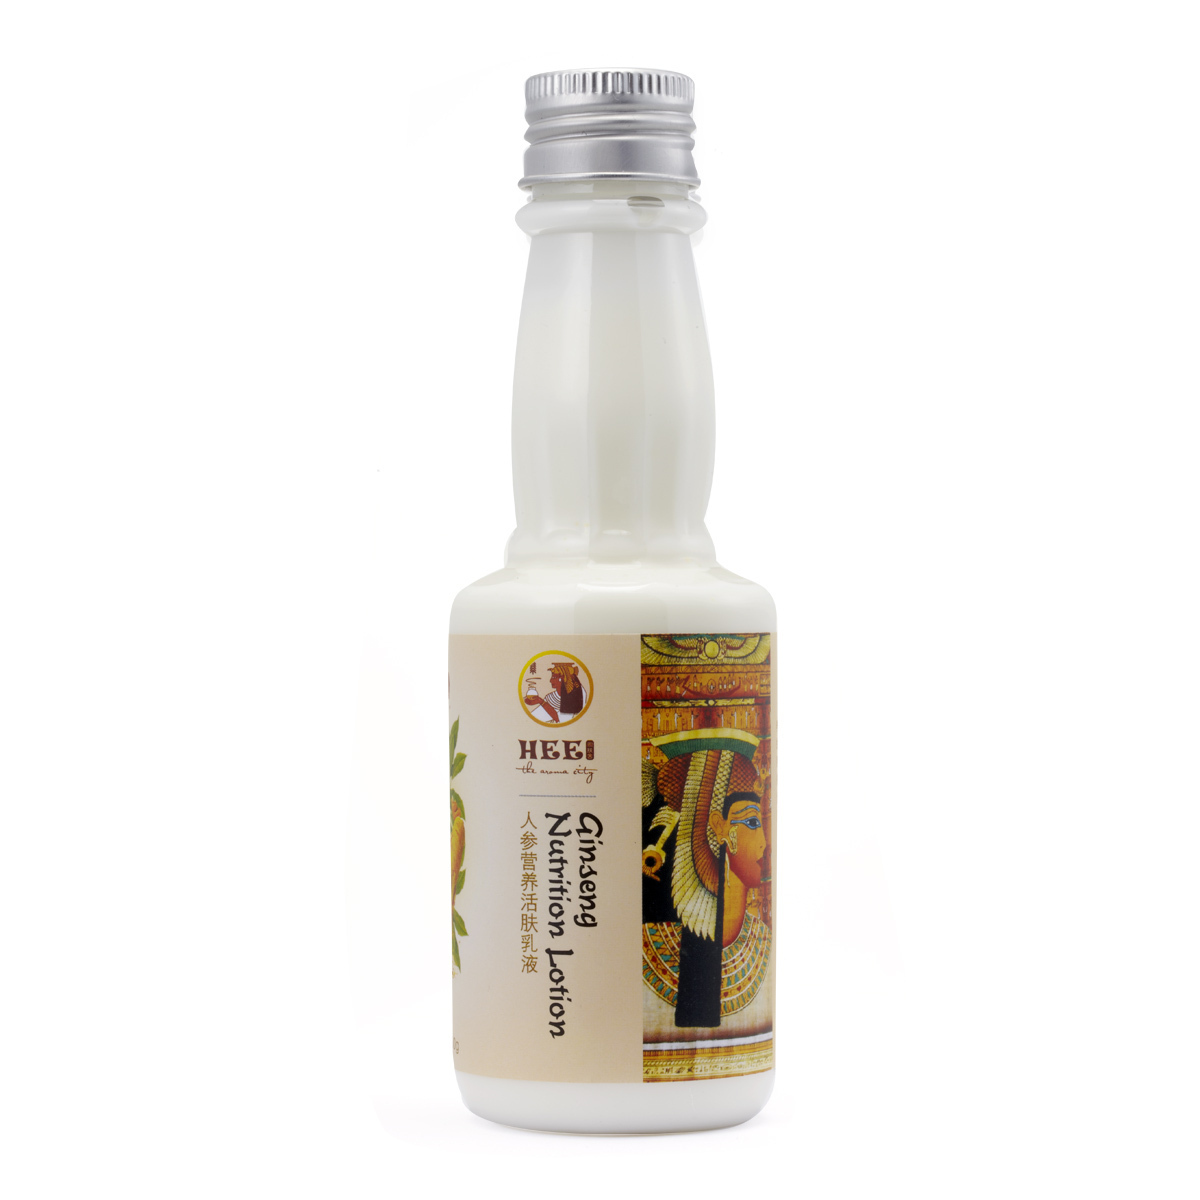 Hot product hee ginseng nutrition revitalizing lotion anti-wrinkle firming moisturizing 150ml(China (Mainland))